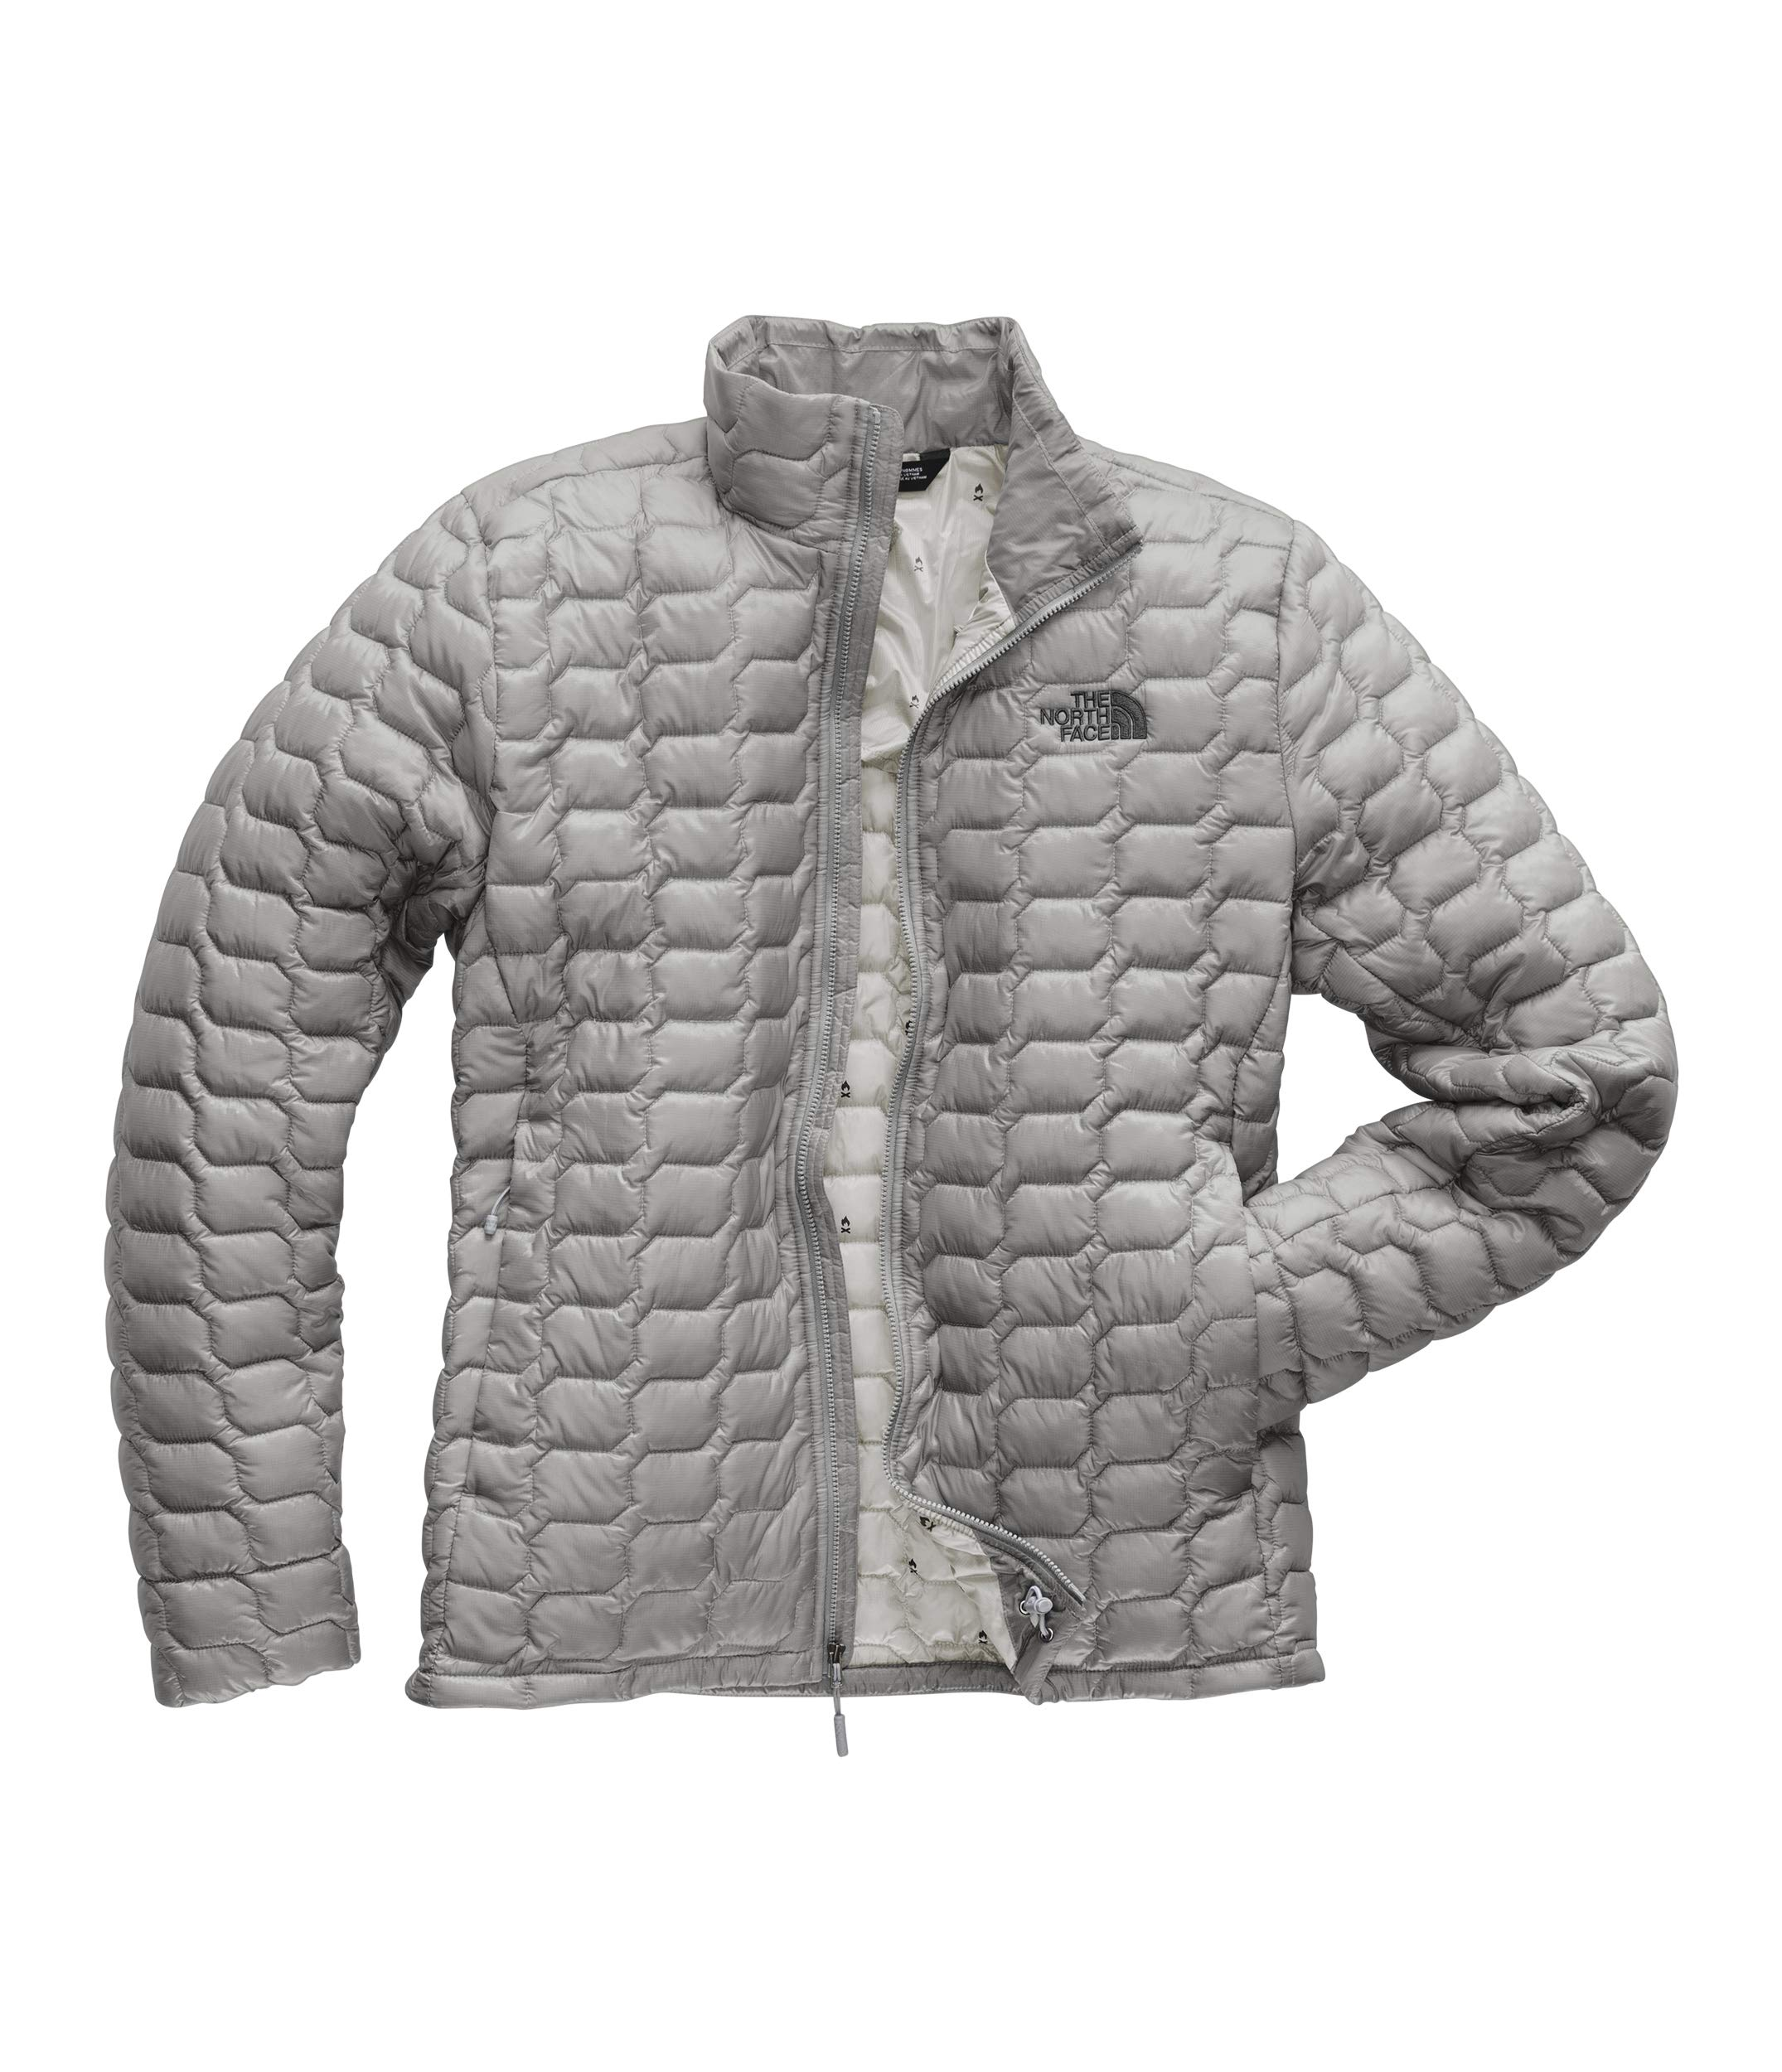 The North Face Men's Thermoball Jacket, Mid Grey/High Rise Grey Campfire Print, Small